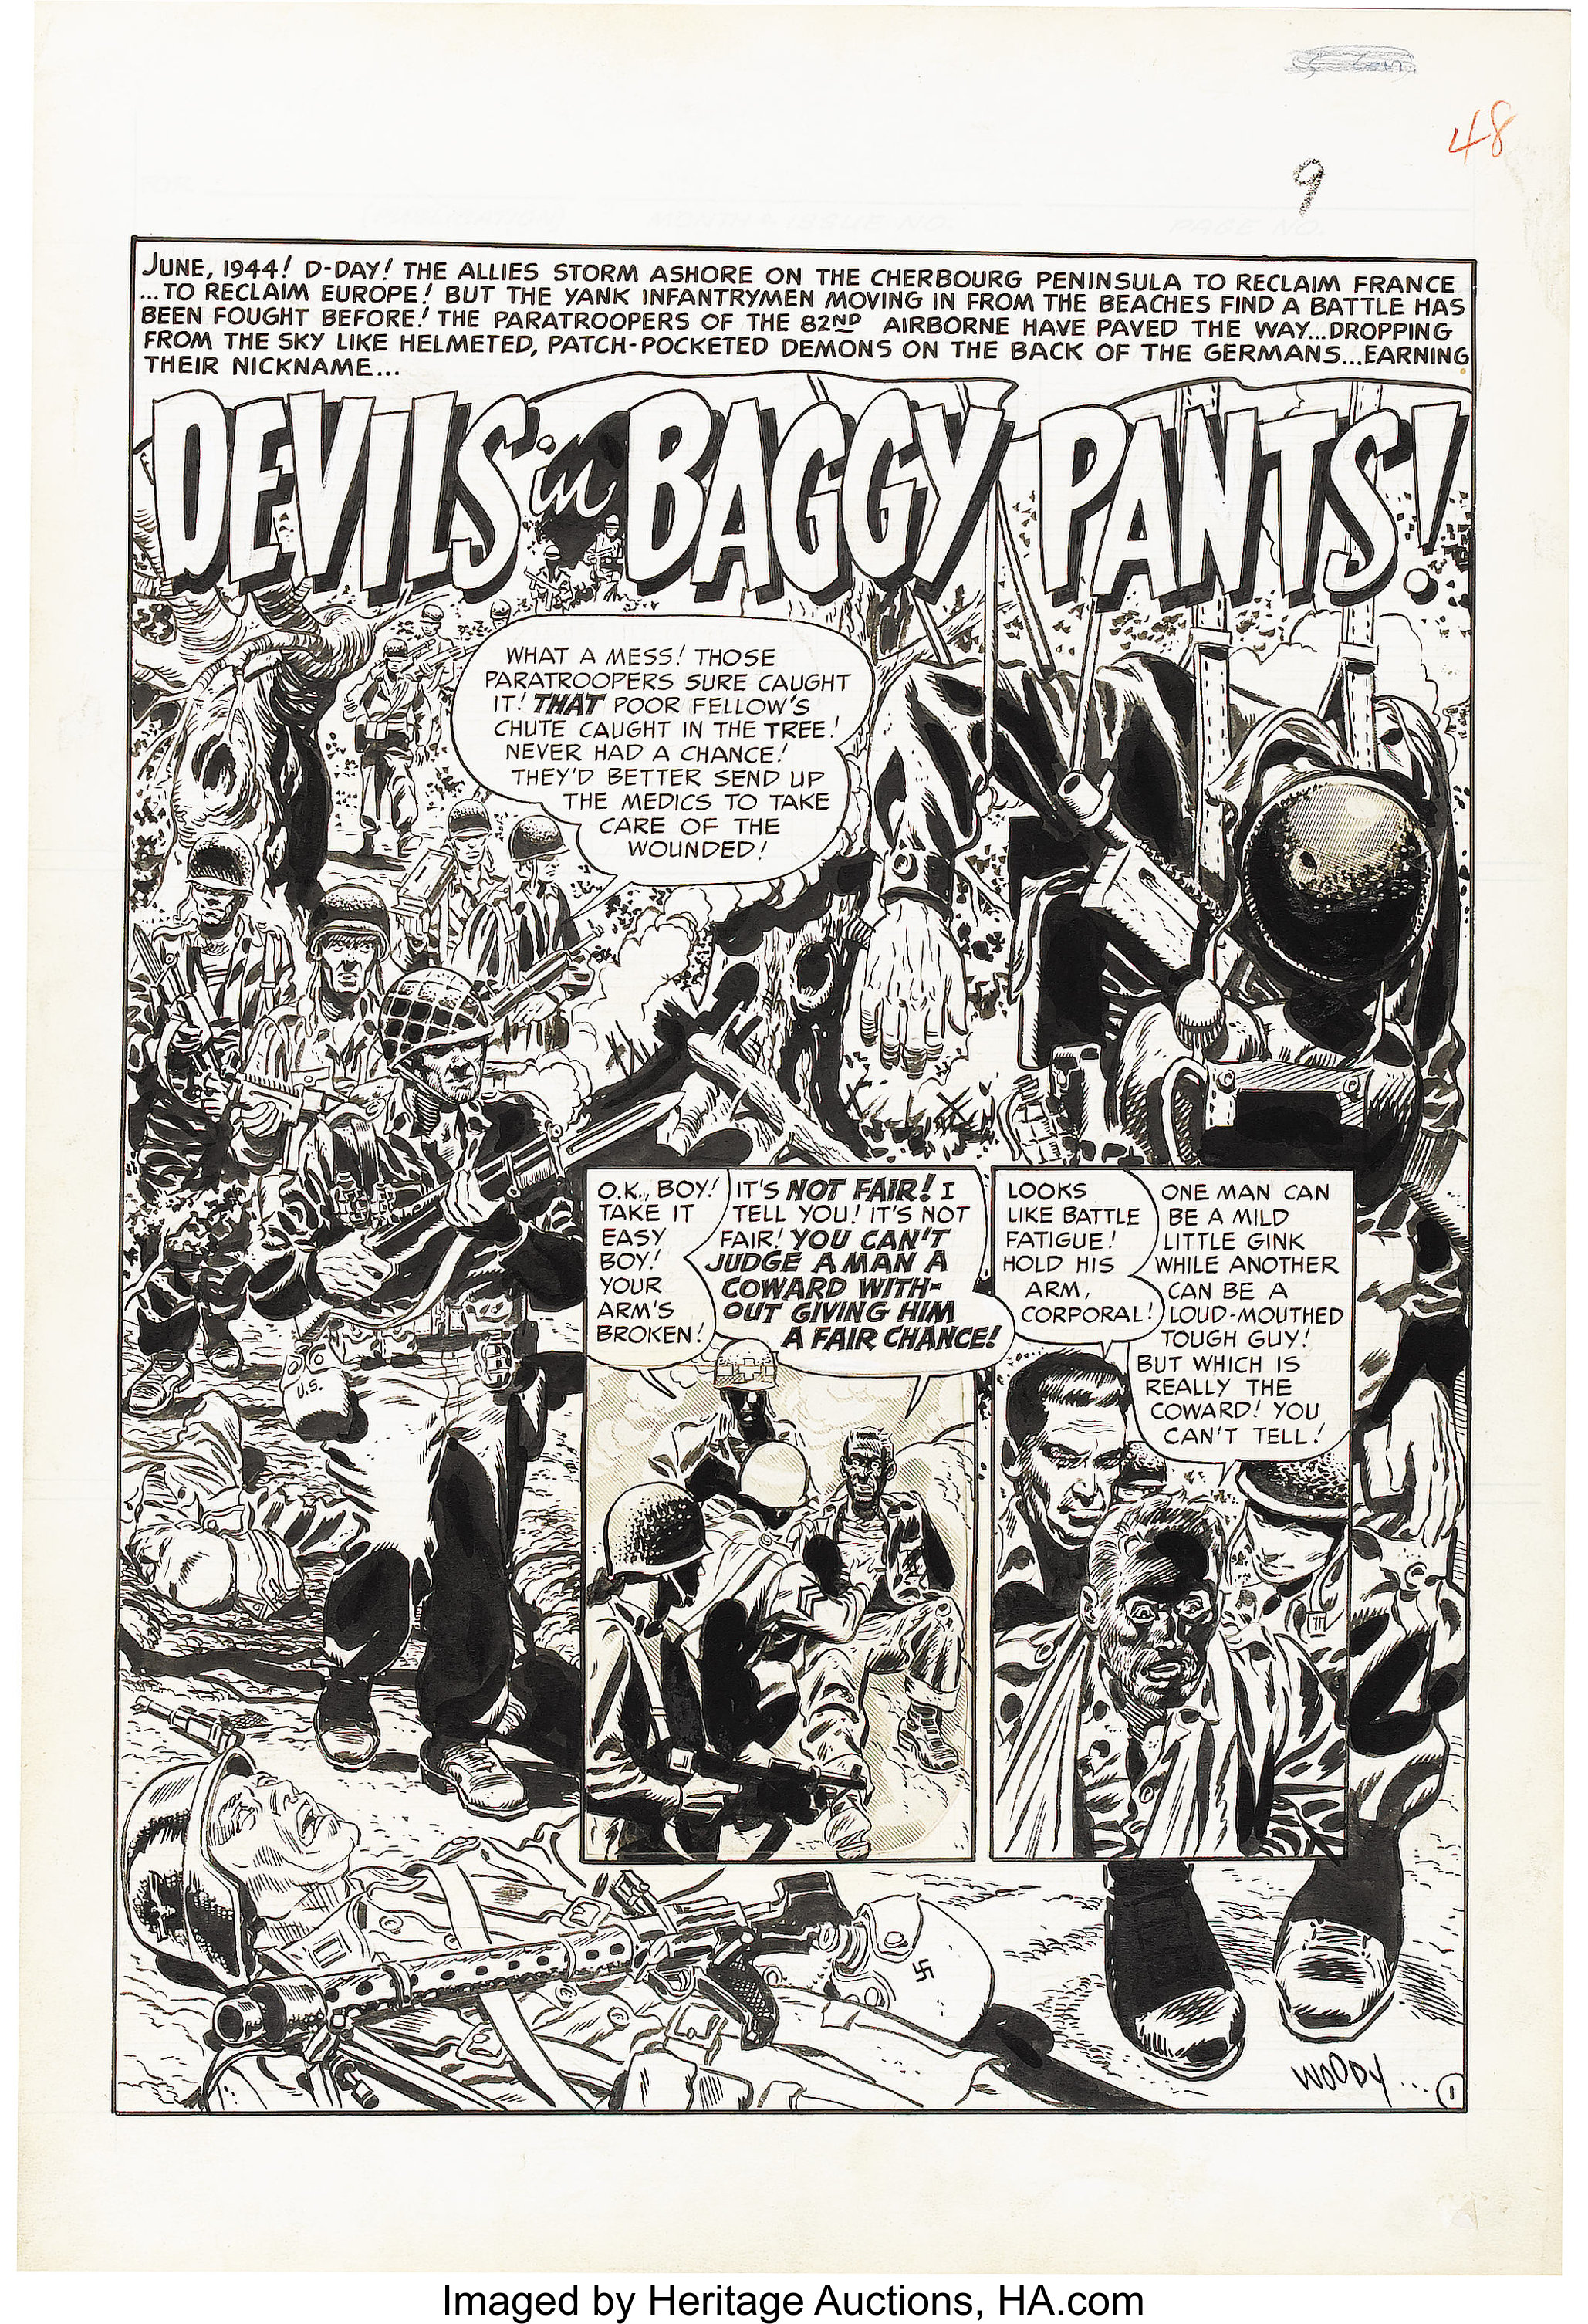 Wally Wood - Two-Fisted Tales #20 Complete 7-Page Story